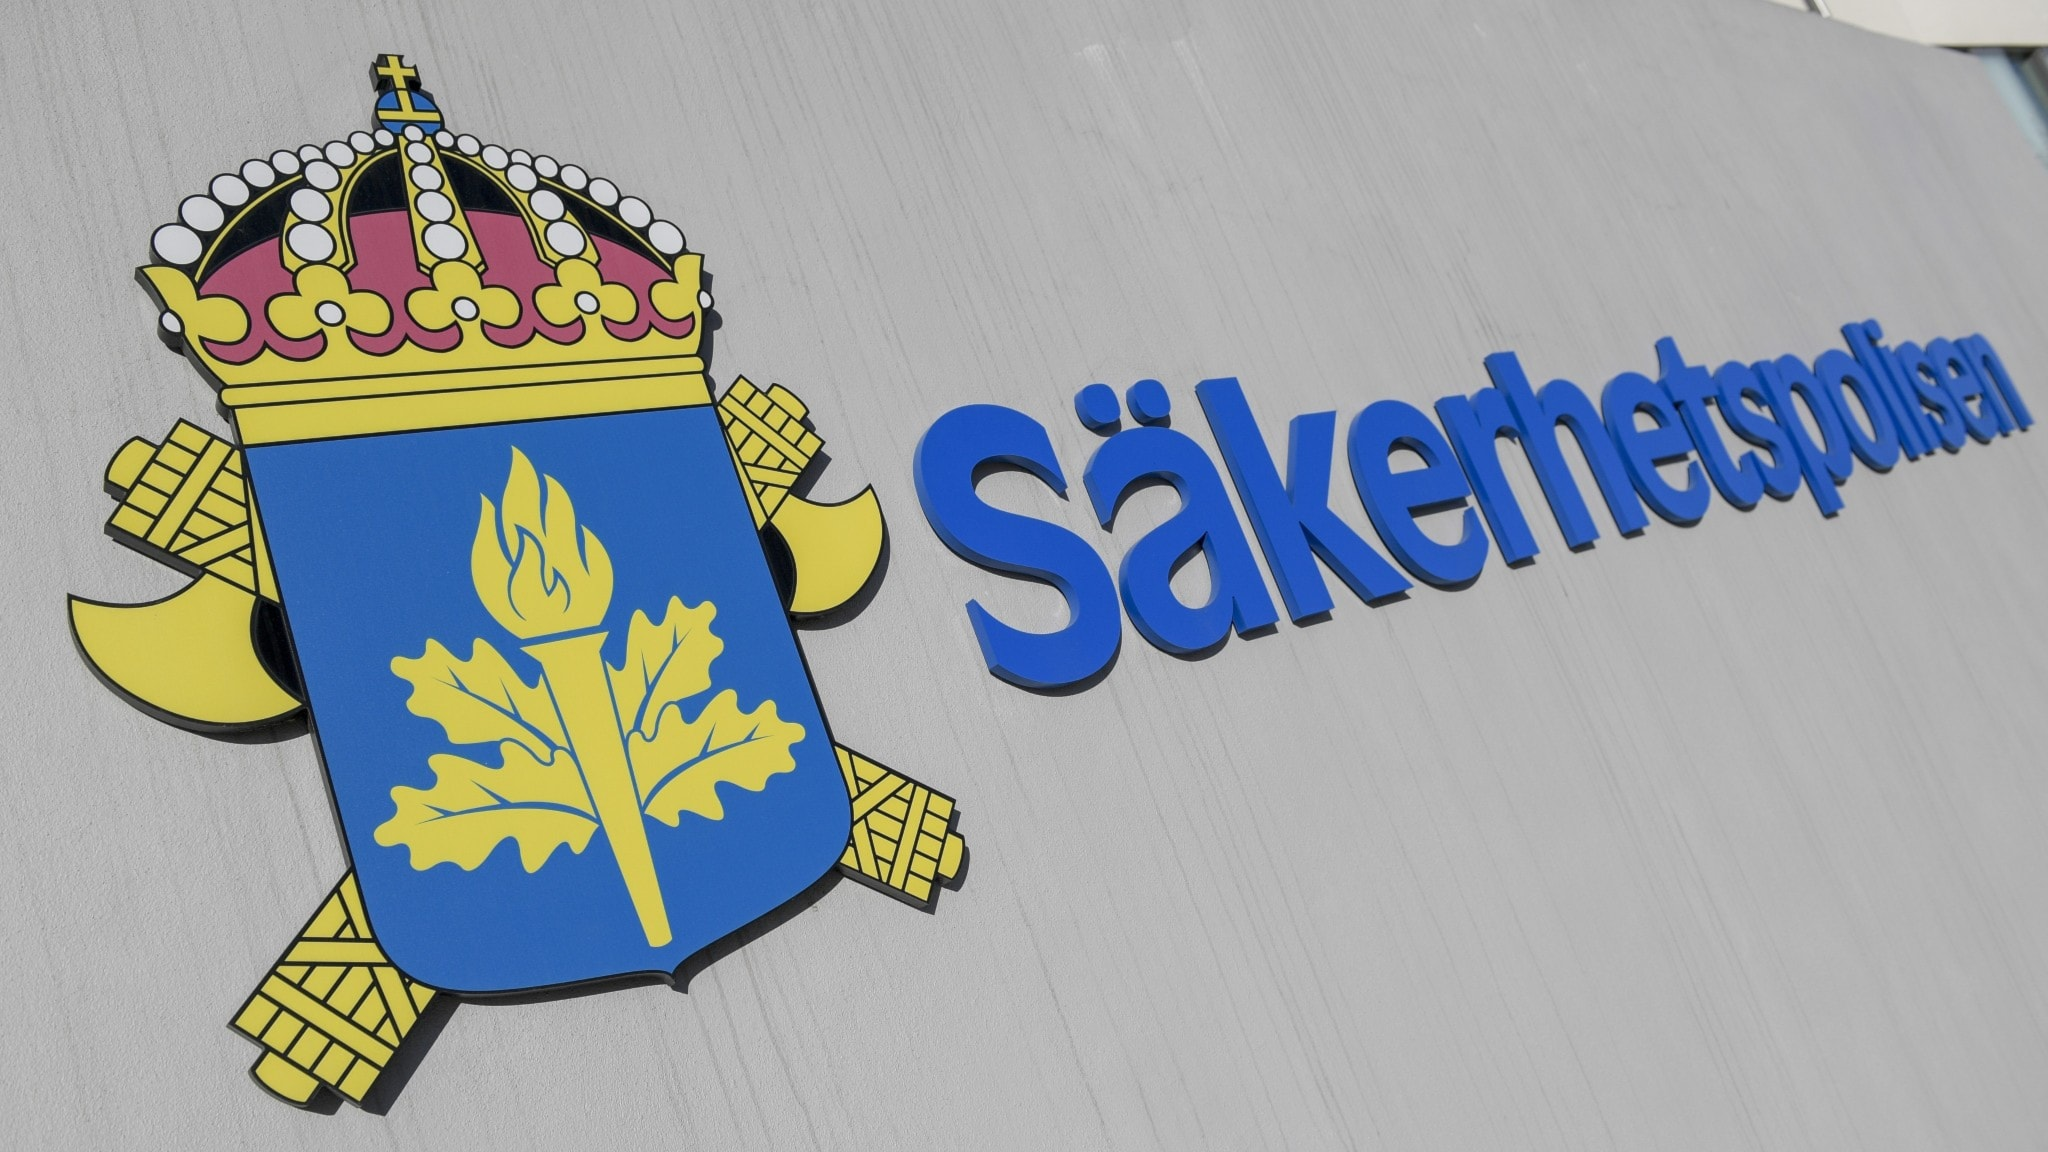 A sign showing the crest and logo of the security service